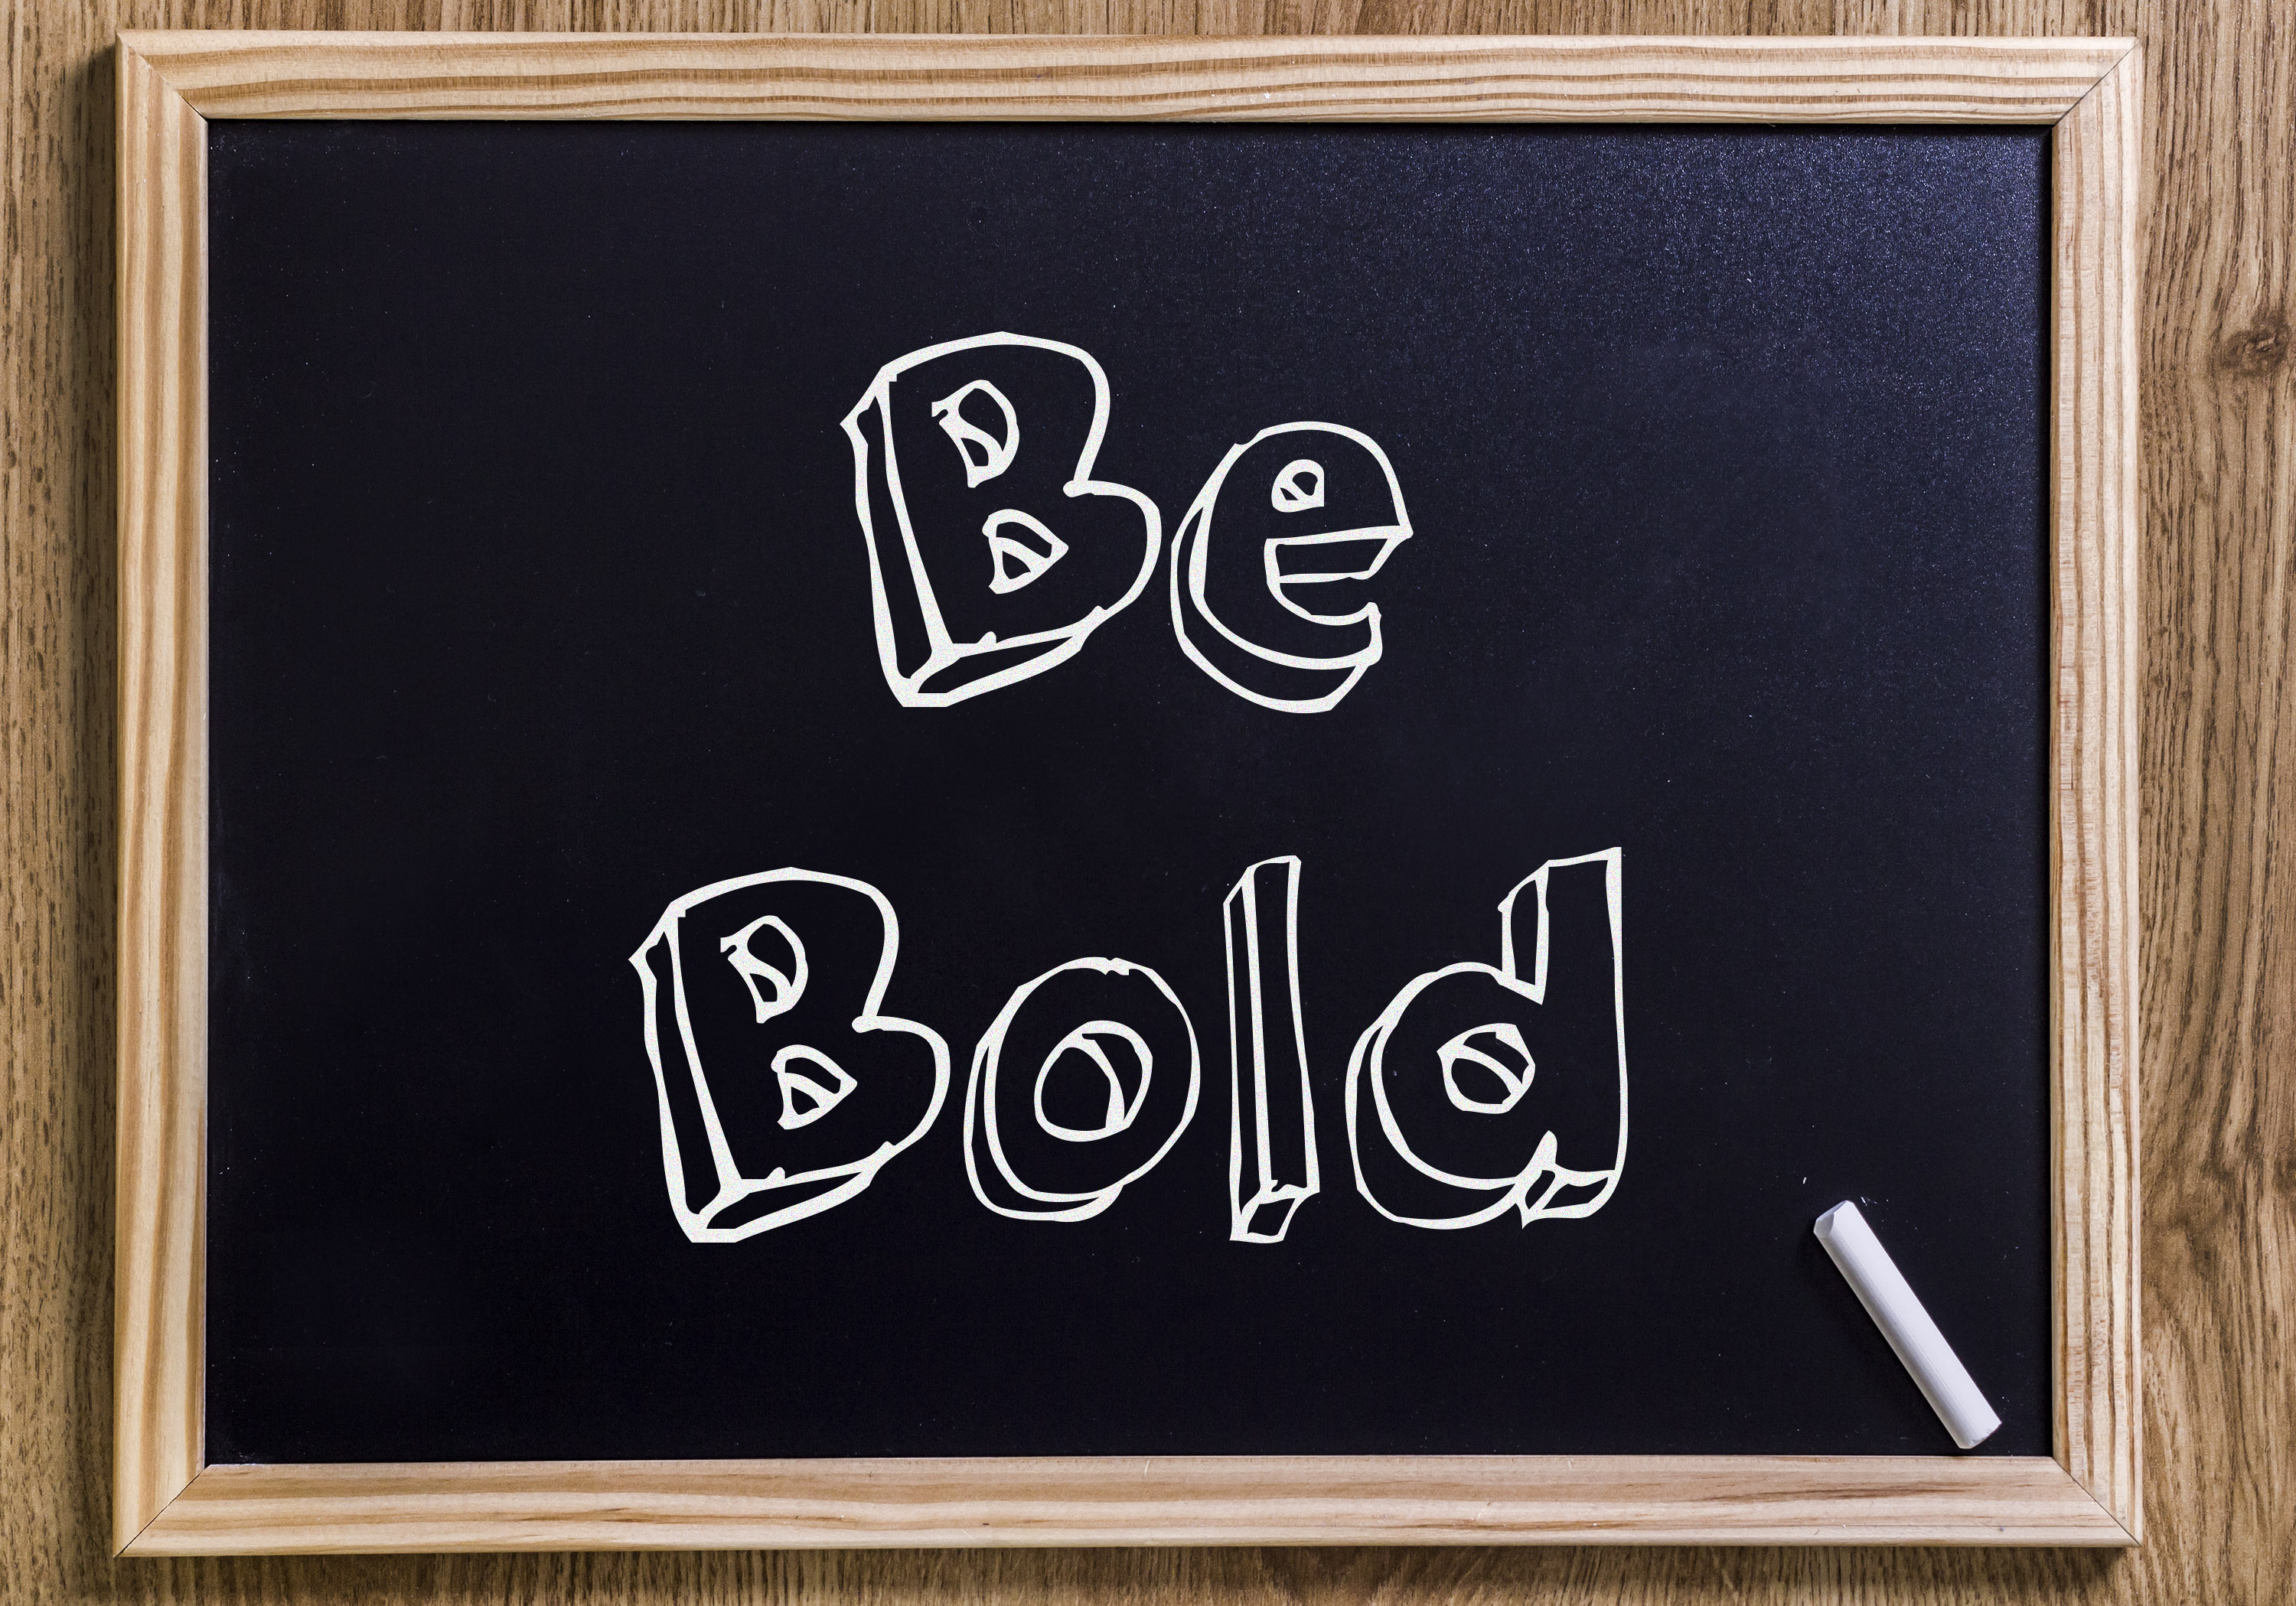 Be Bold - New chalkboard with outlined text - on wood